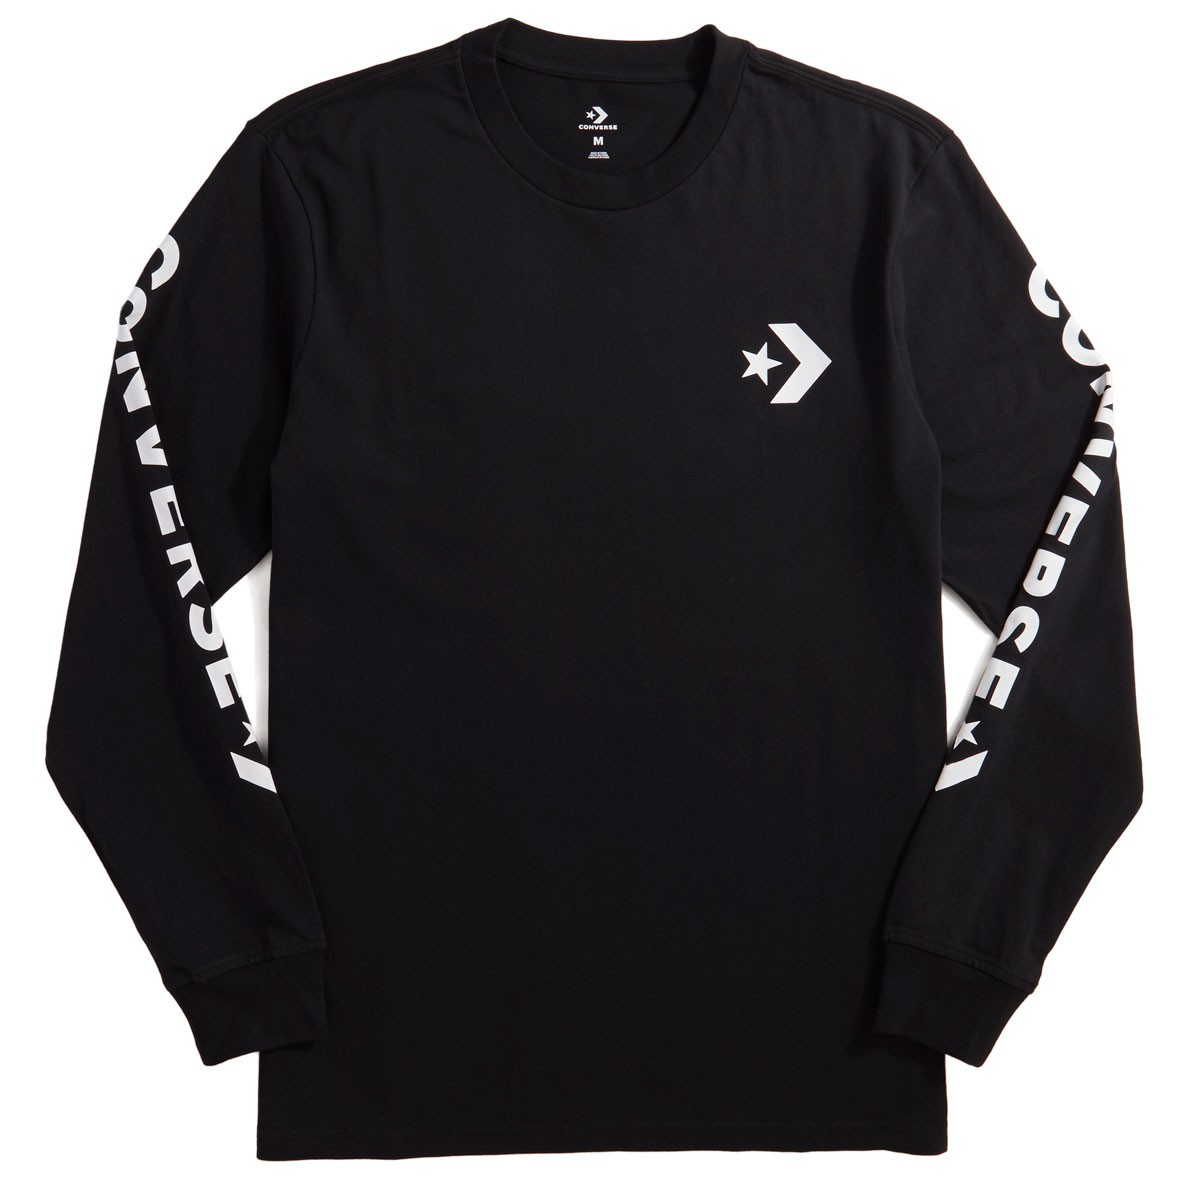 a8e4eabd924d Converse Star Chevron Wordmark Long Sleeve T-Shirt - Black